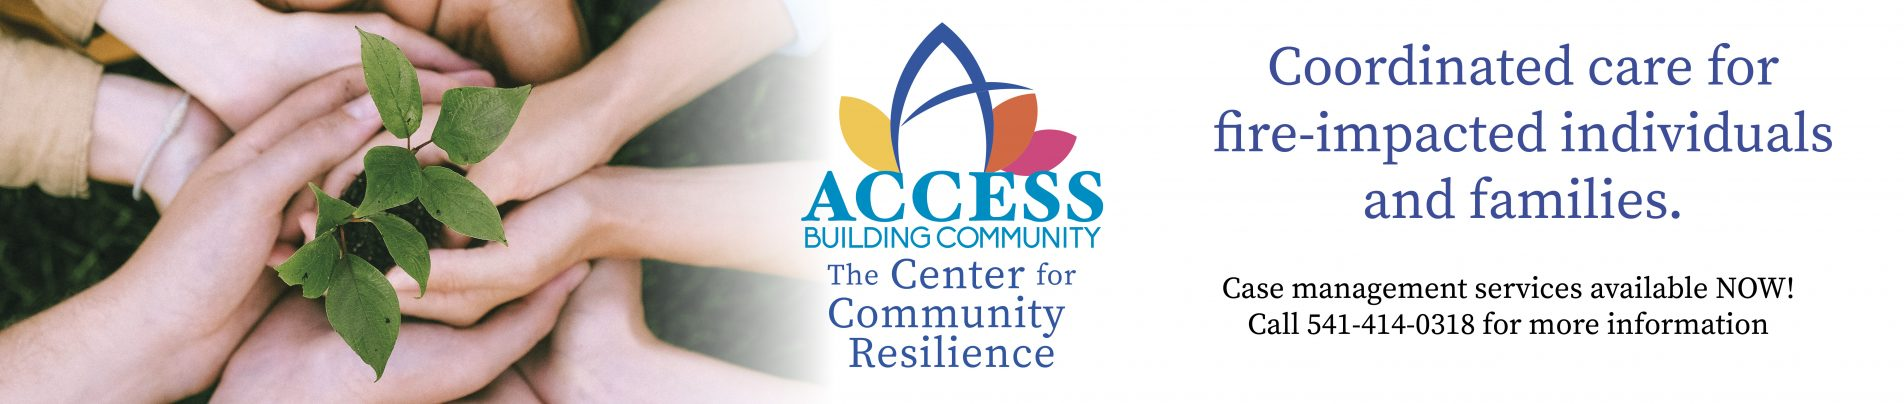 ACCESS Center for Community Resilience website banner highlighting coordinated care for fire-impacted households and contact information